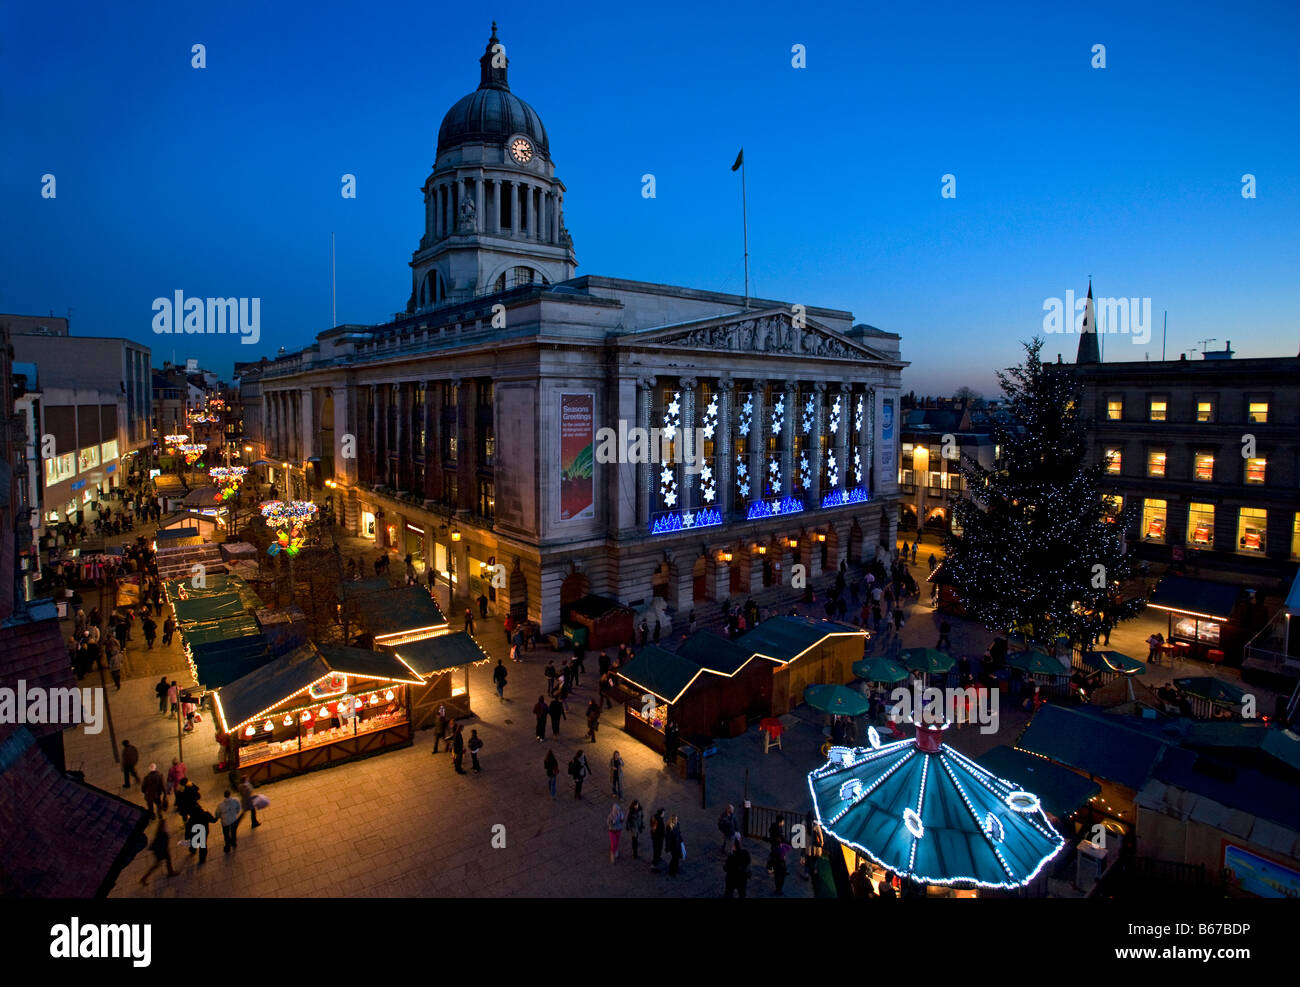 Nottingham town hall with Christmas lights and market,england - Stock Image